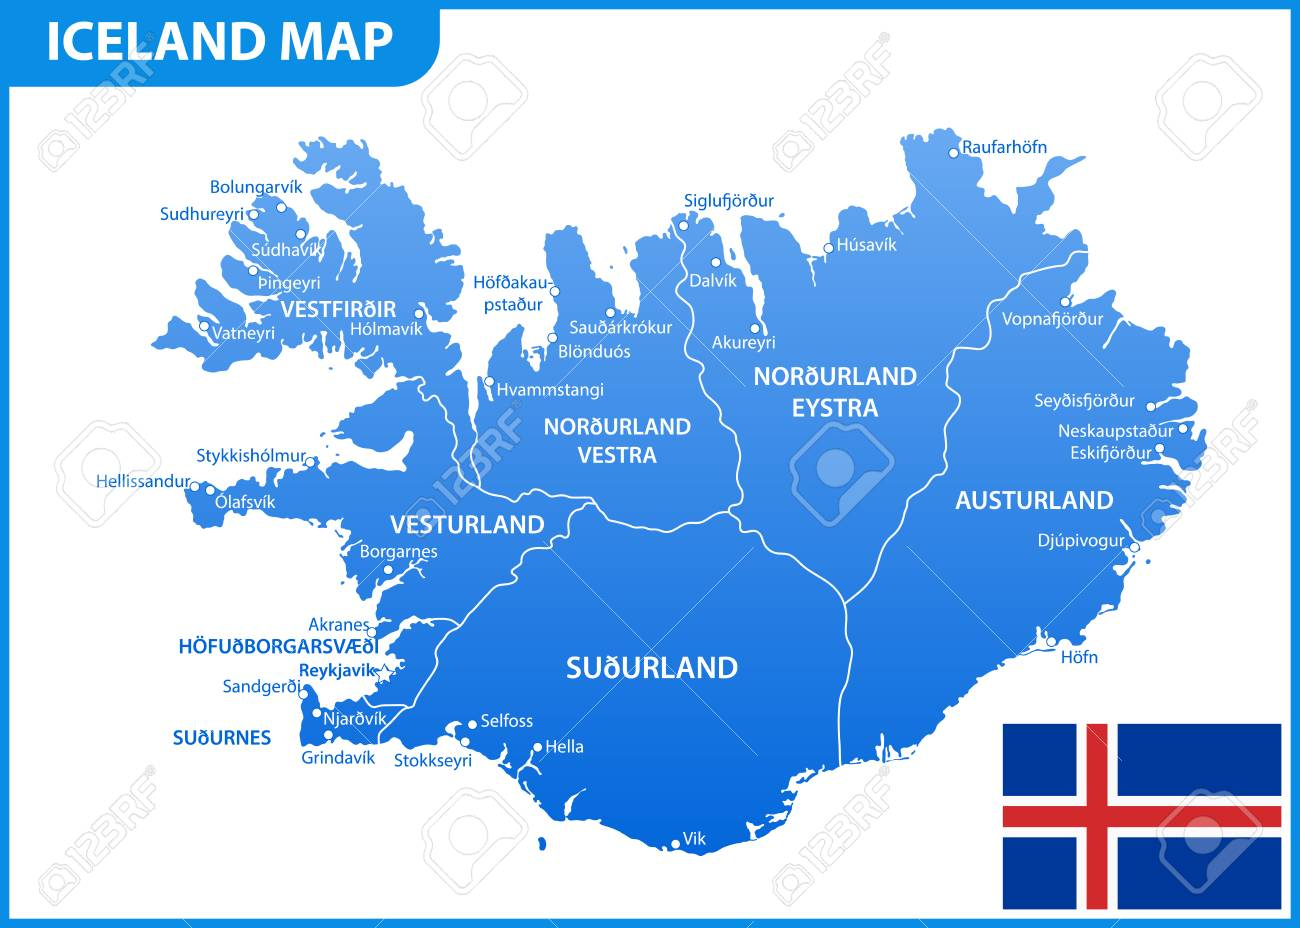 The detailed map of Iceland with regions or states and cities,.. on jamaica state map, albania state map, denmark state map, hungary state map, haiti state map, park city utah state map, nunavut state map, nepal state map, united states of america state map, ukraine state map, france state map, north east region state map, bahamas state map, antarctica state map, malaysia state map, romania state map, mongolia state map, bolivia state map, iceland summer, paraguay state map,